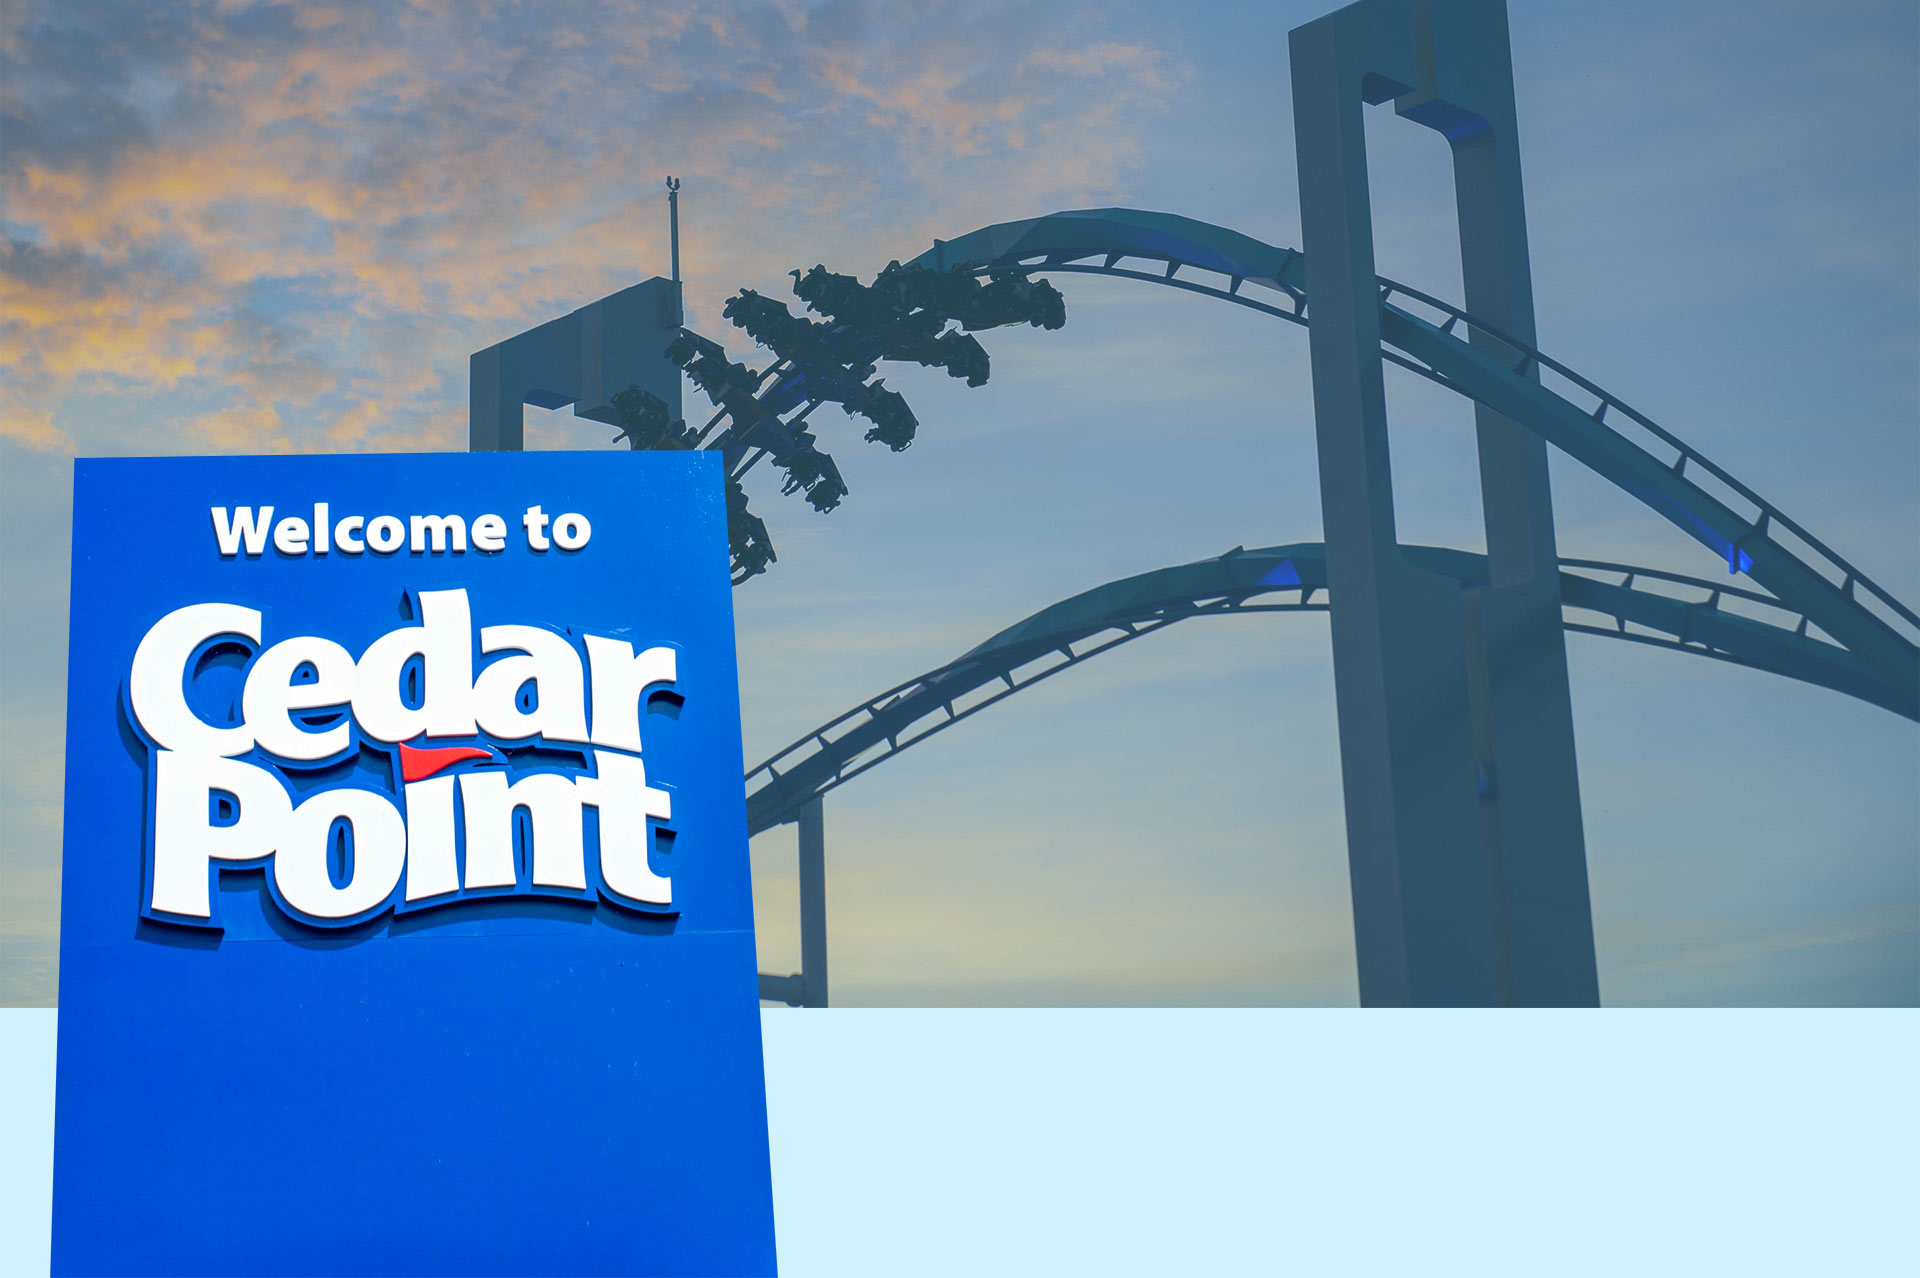 Welcome to Cedar Point